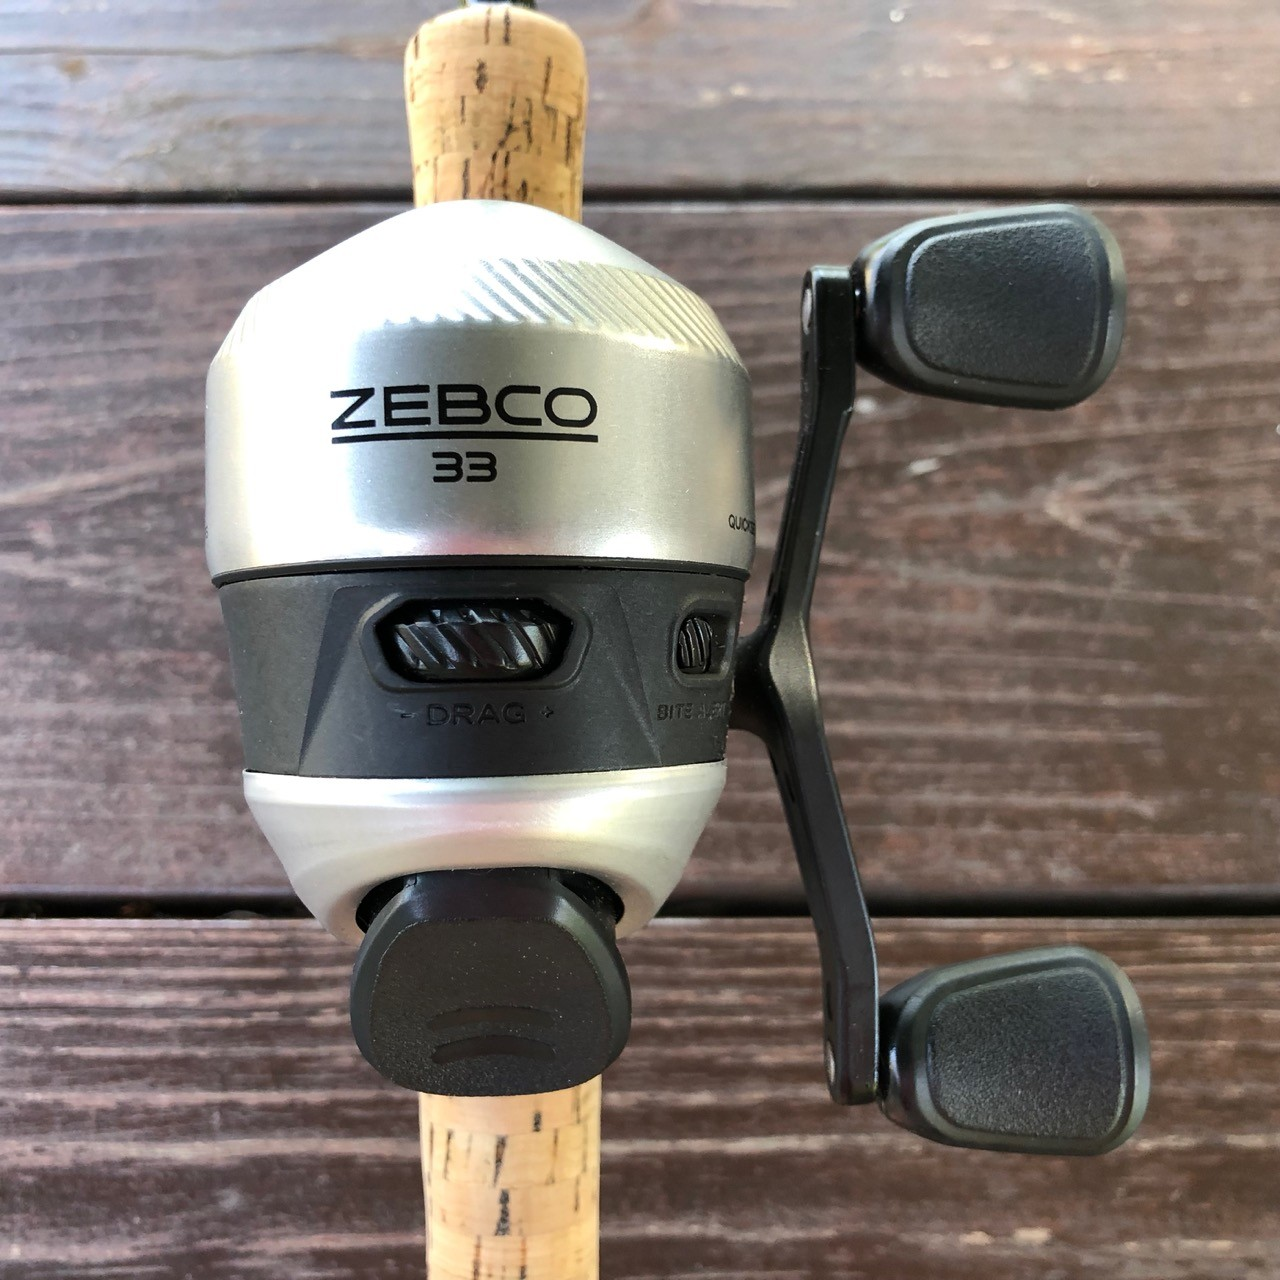 new zebco 33 reel